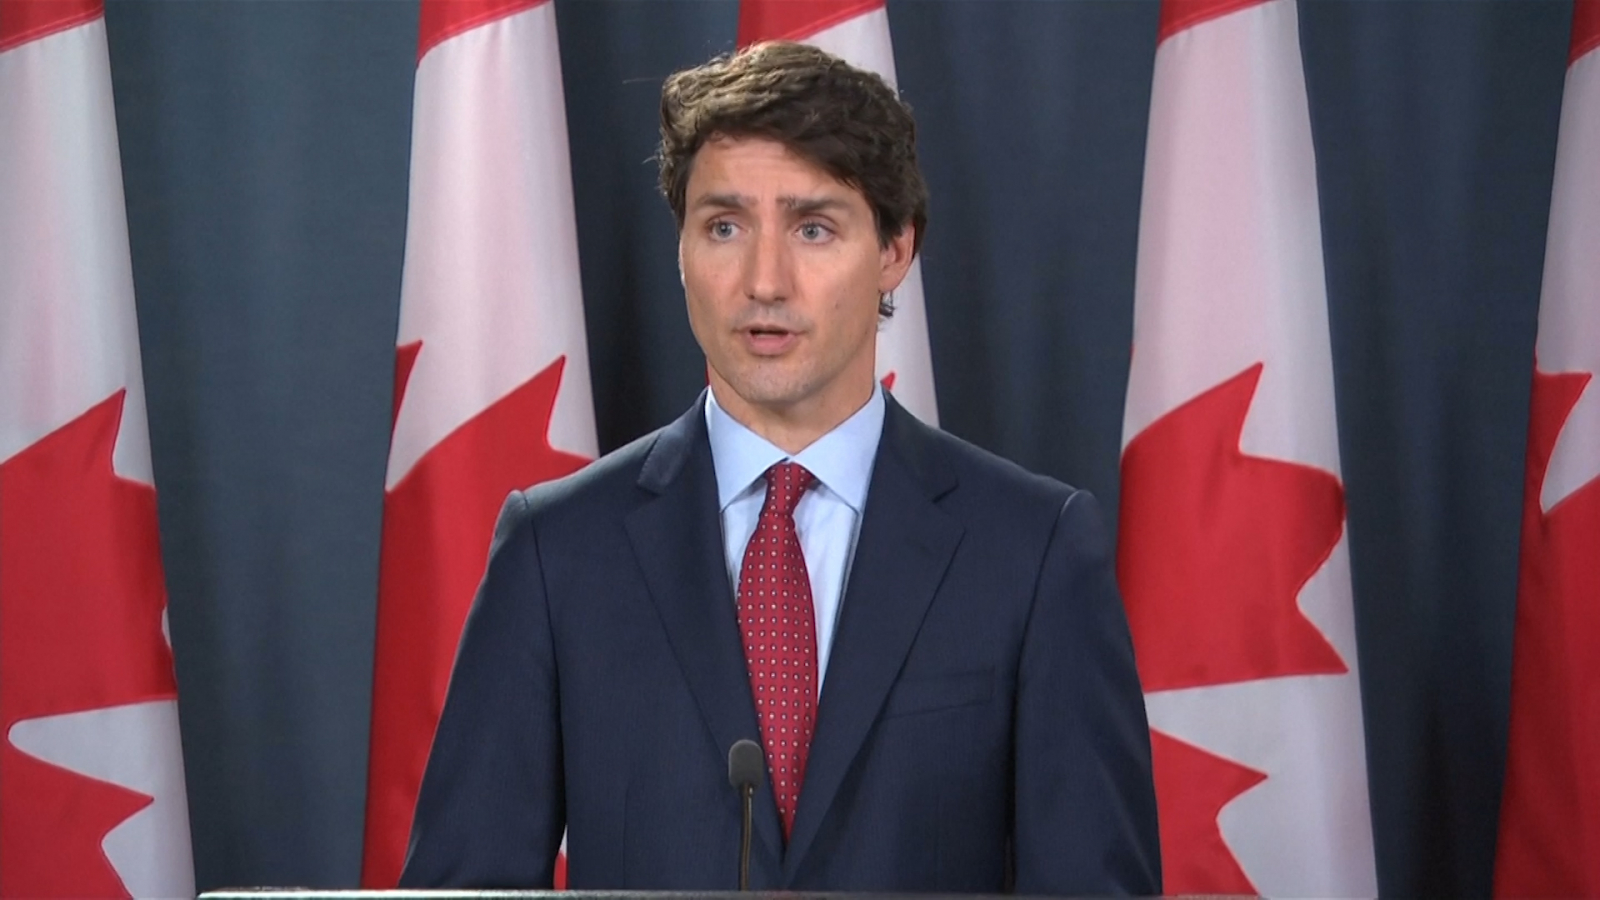 justin-trudeau-slams-trump-tariffs-on-steel-and-aluminum-as-totally-unacceptable